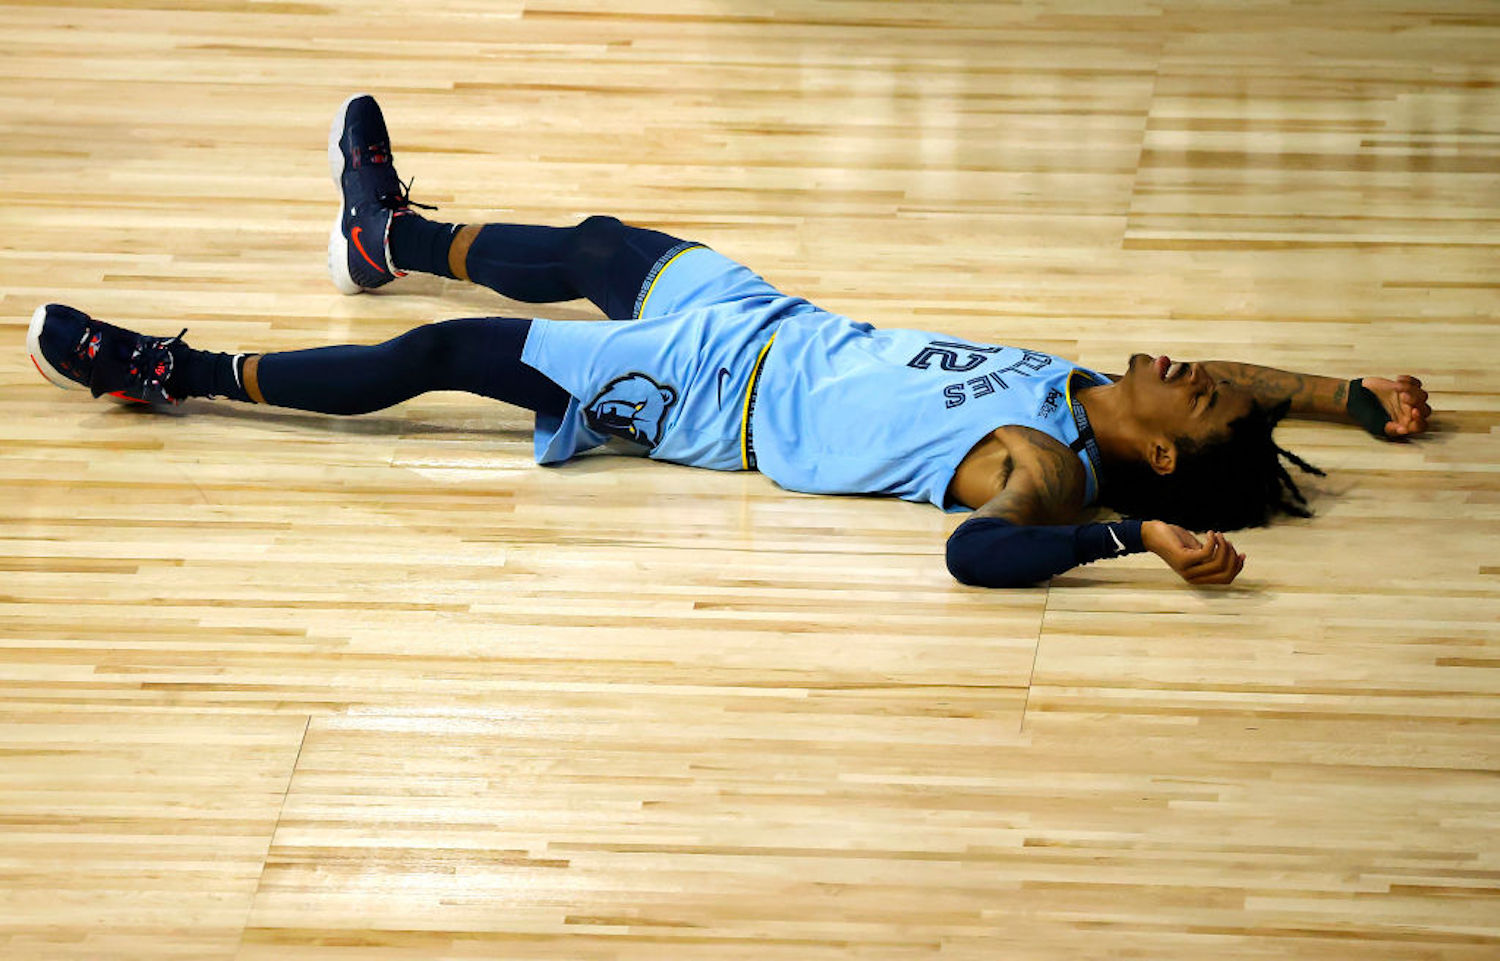 Ja Morant was wheeled off the court Monday after suffering an ankle sprain, but the X-ray made Grizzlies fans breathe a sigh of relief.